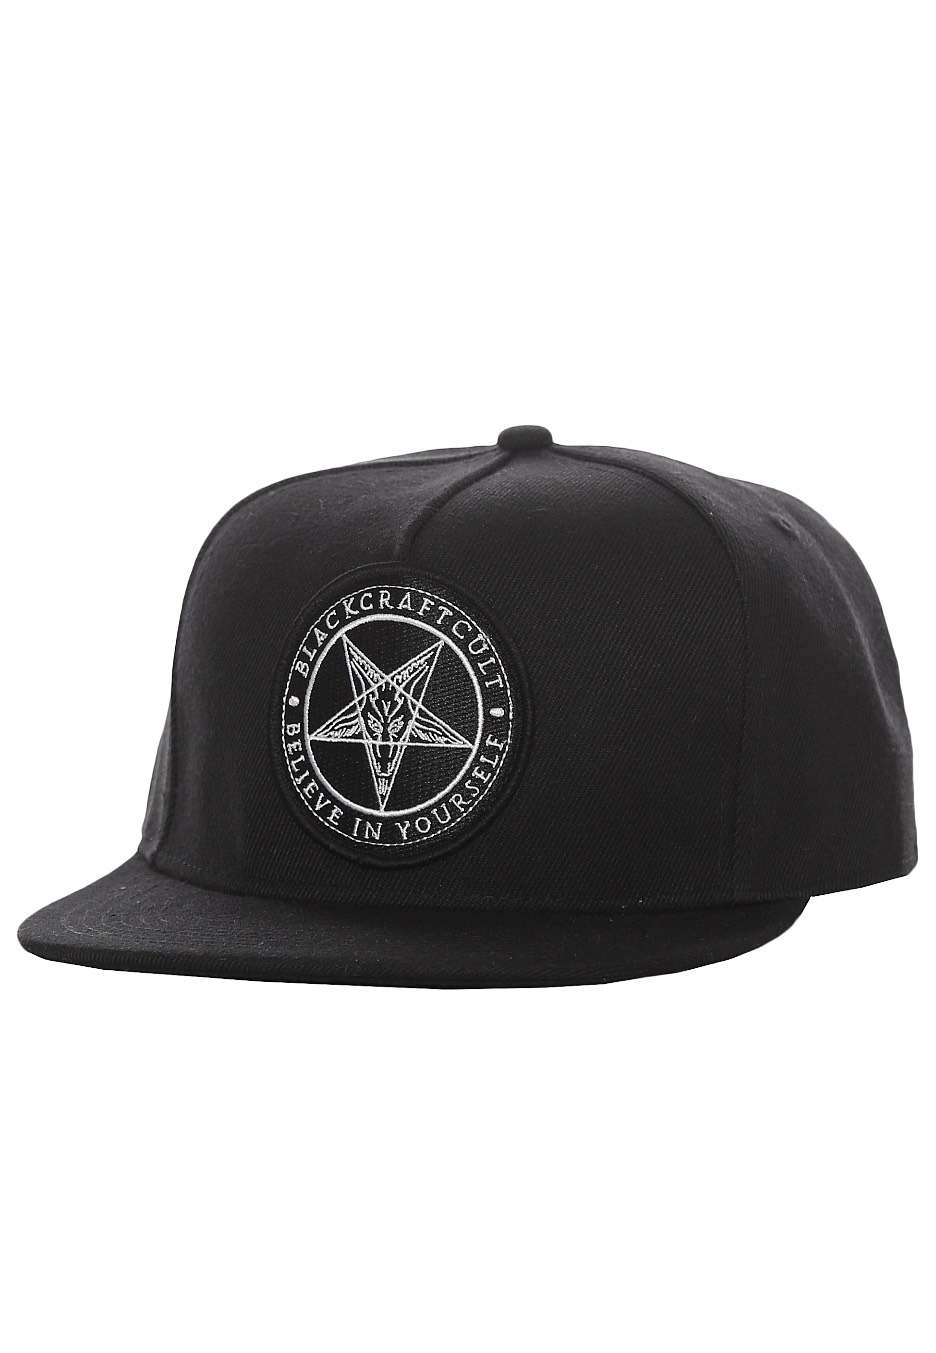 Black Craft Cult - Believe In Yourself - Cap - Streetwear Shop -  Impericon.com US a449f2e174d